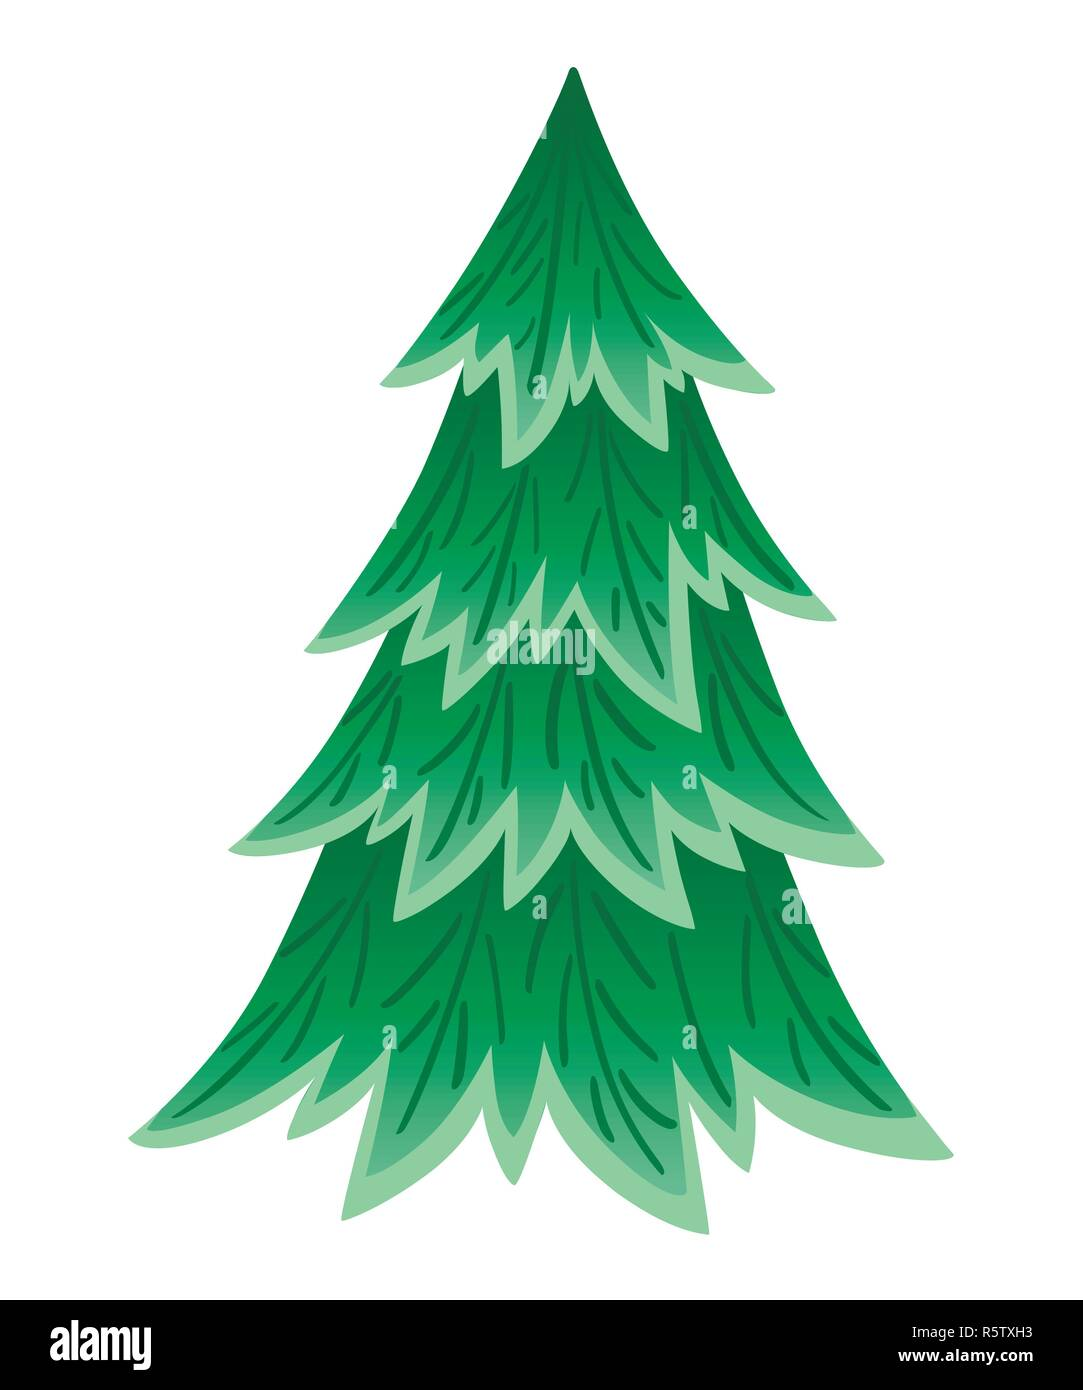 Green Spruce Tree Evergreen Flat Style Christmas Tree Without